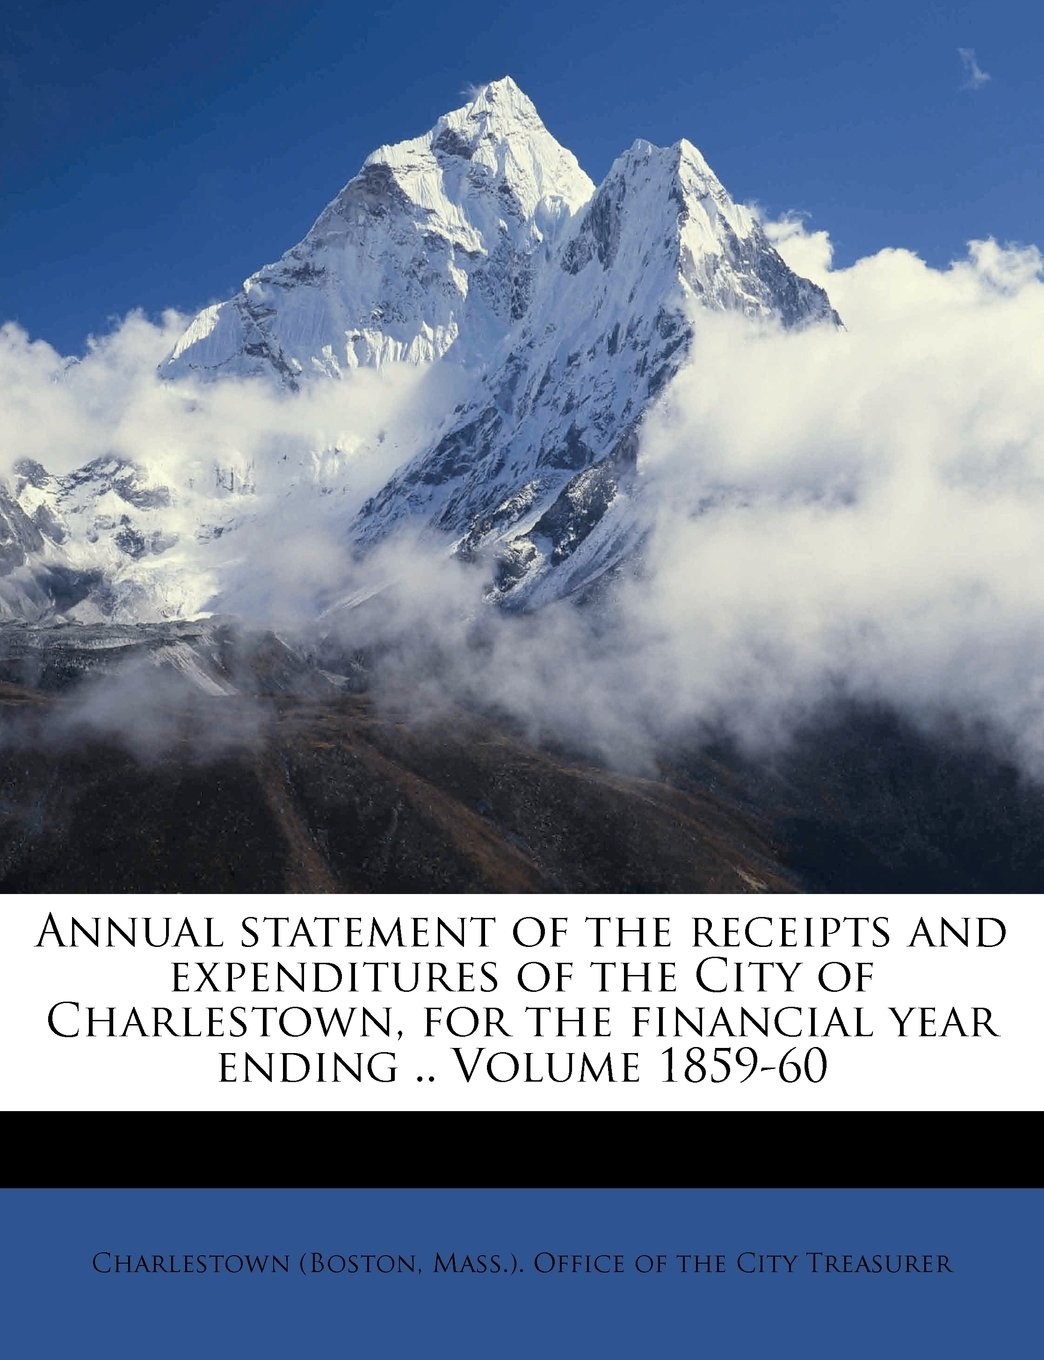 Annual statement of the receipts and expenditures of the City of Charlestown, for the financial year ending .. Volume 1859-60 pdf